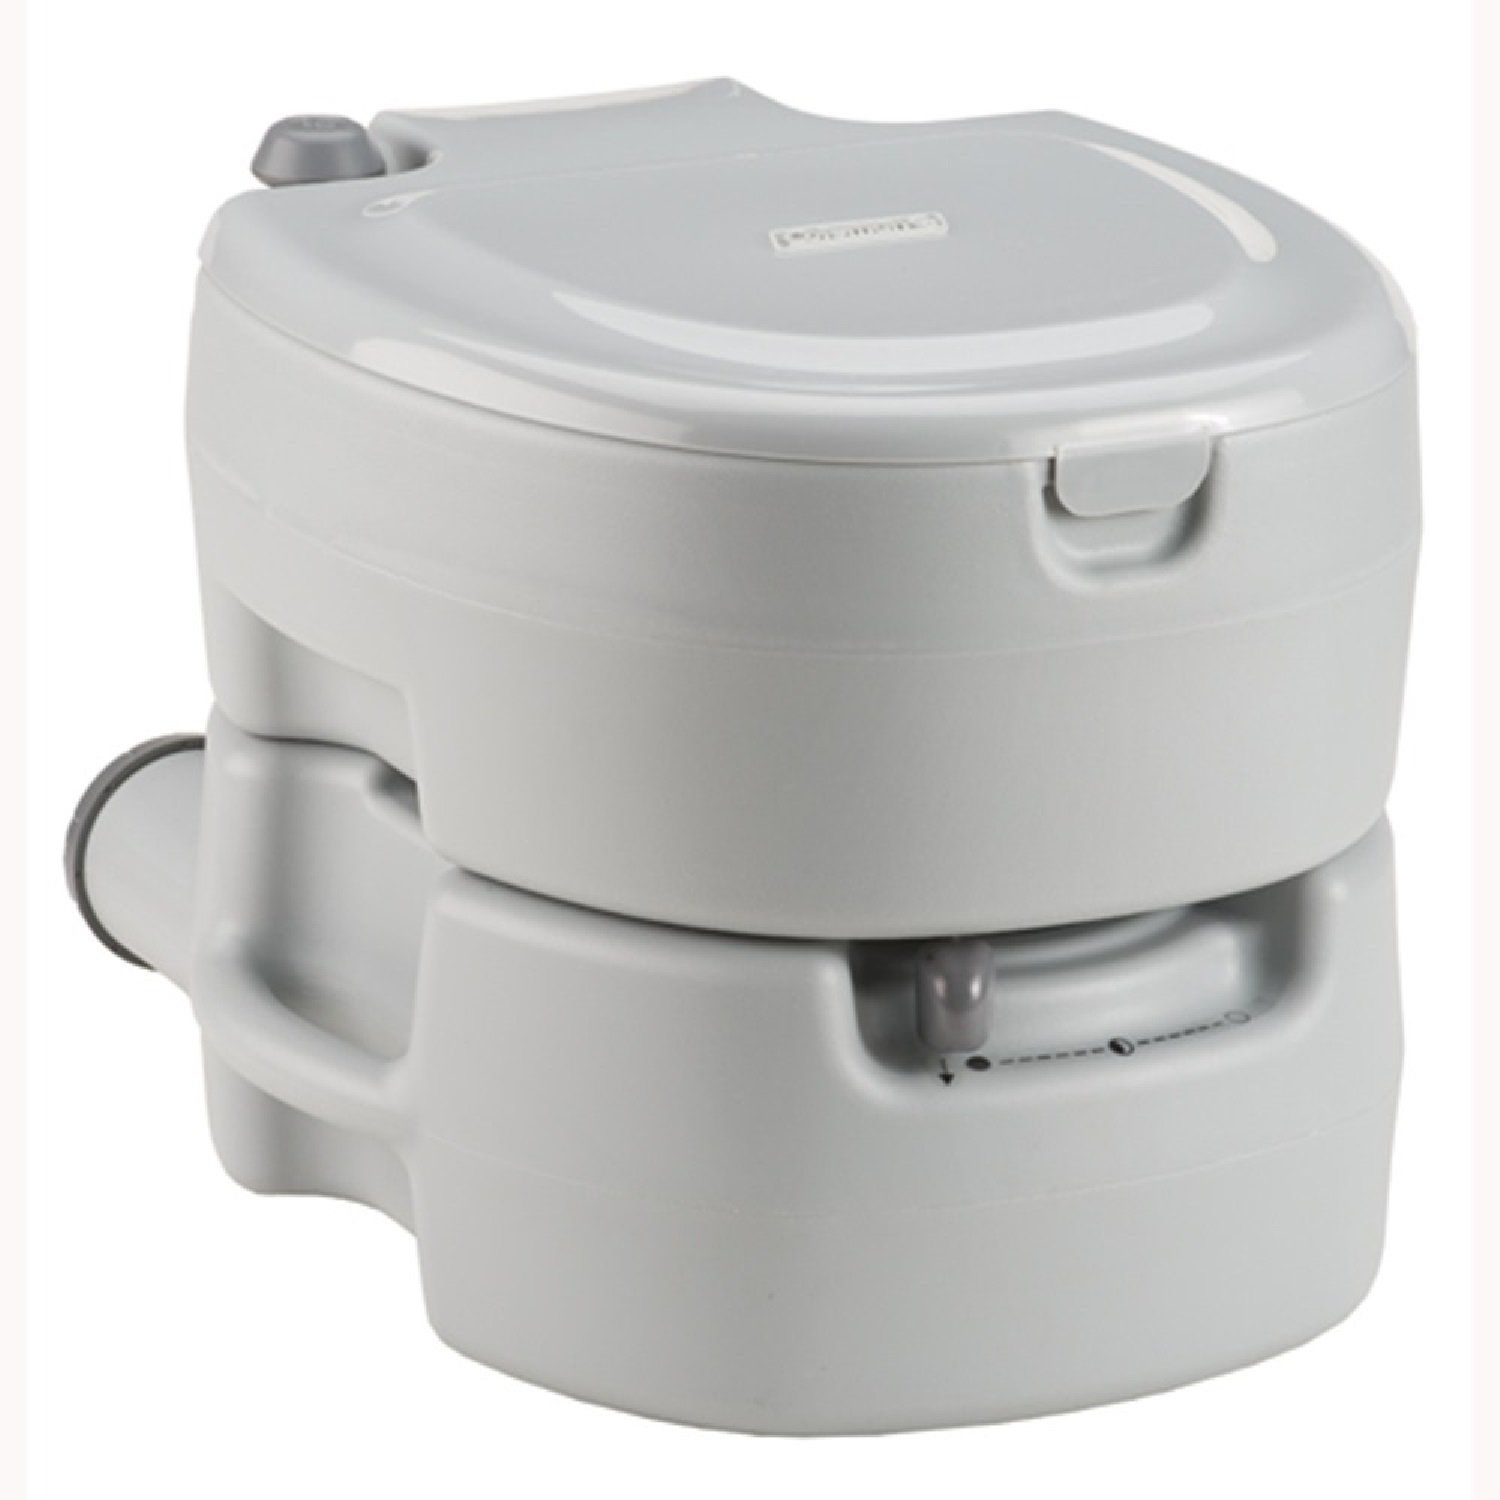 Coleman 5.3 gallon Portable Flush Toilet